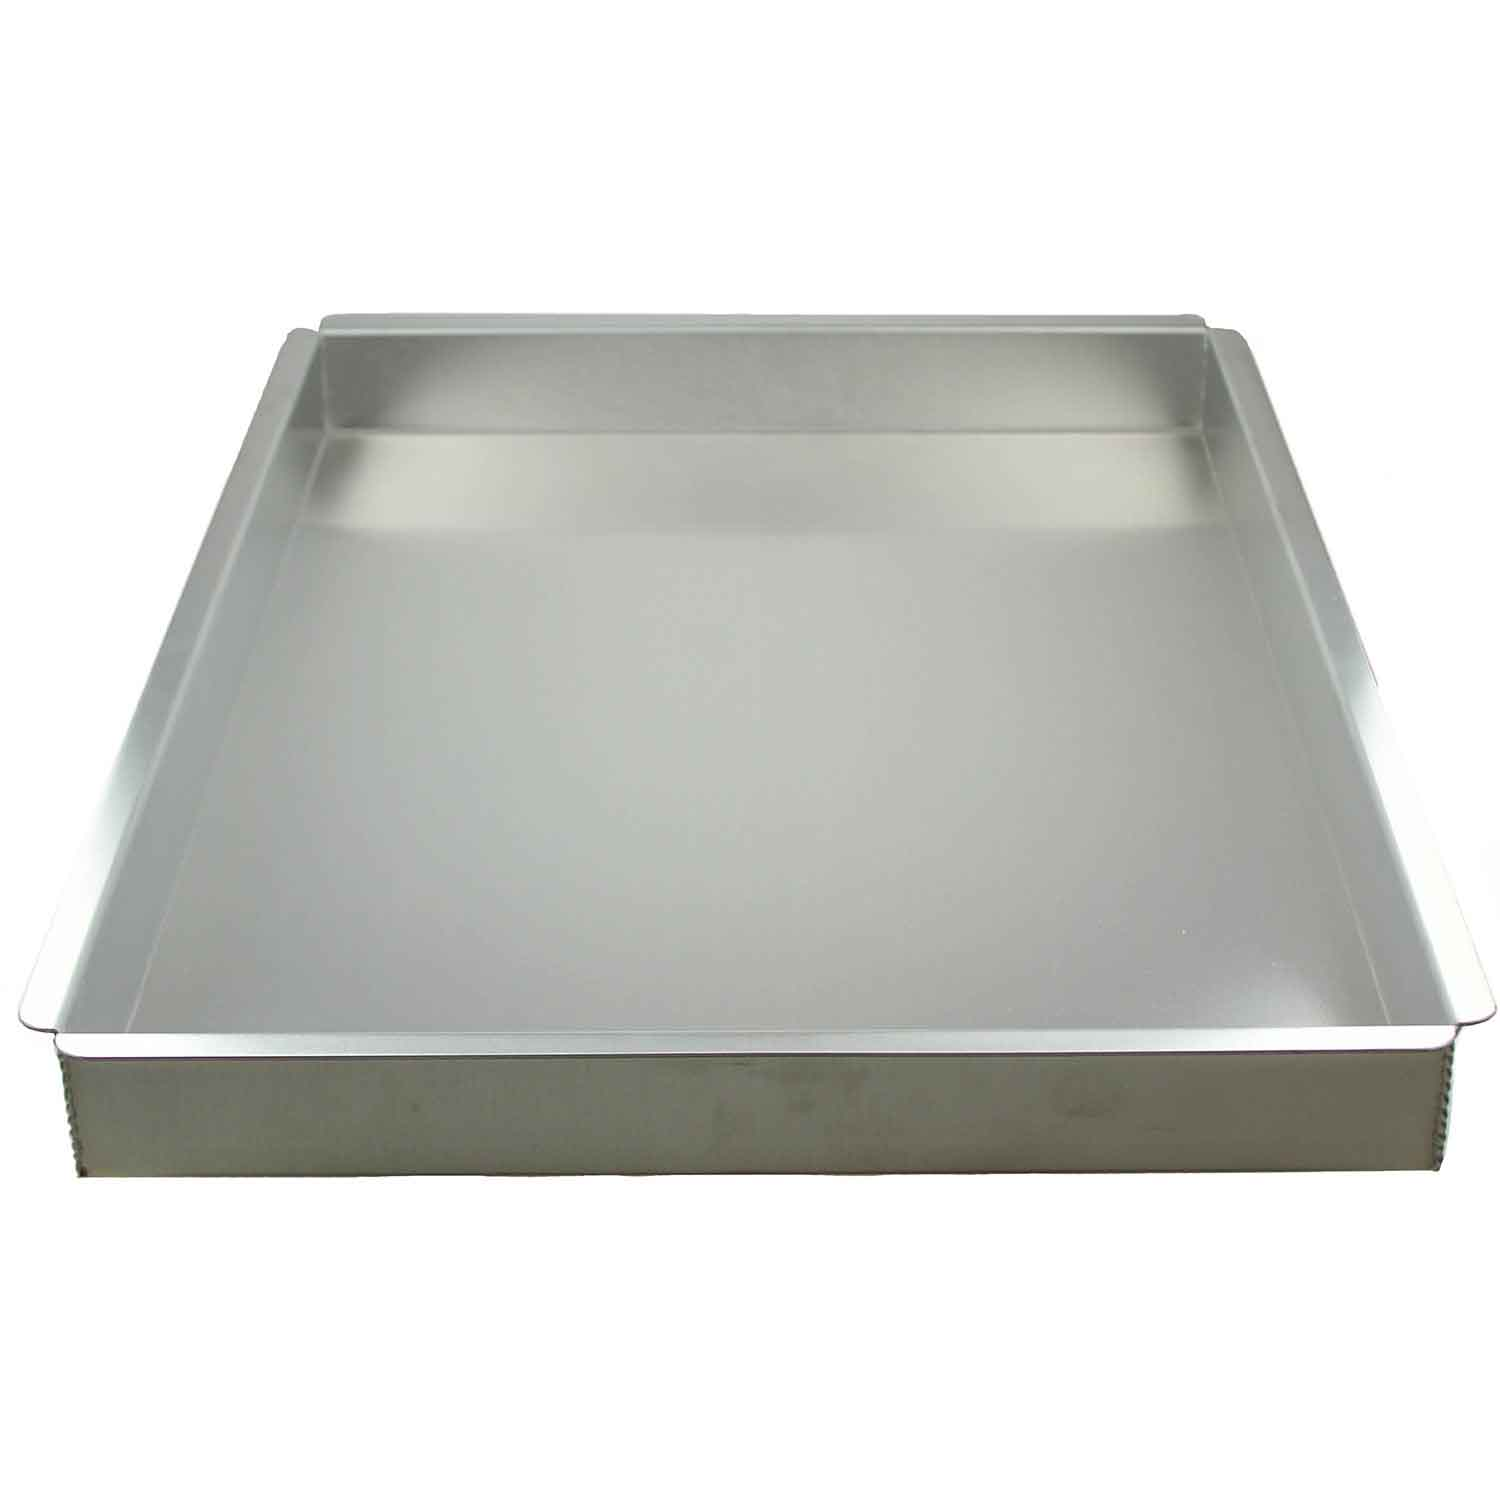 "16 X 24 x 2"" Magic Line Full Sheet Cake Pan"